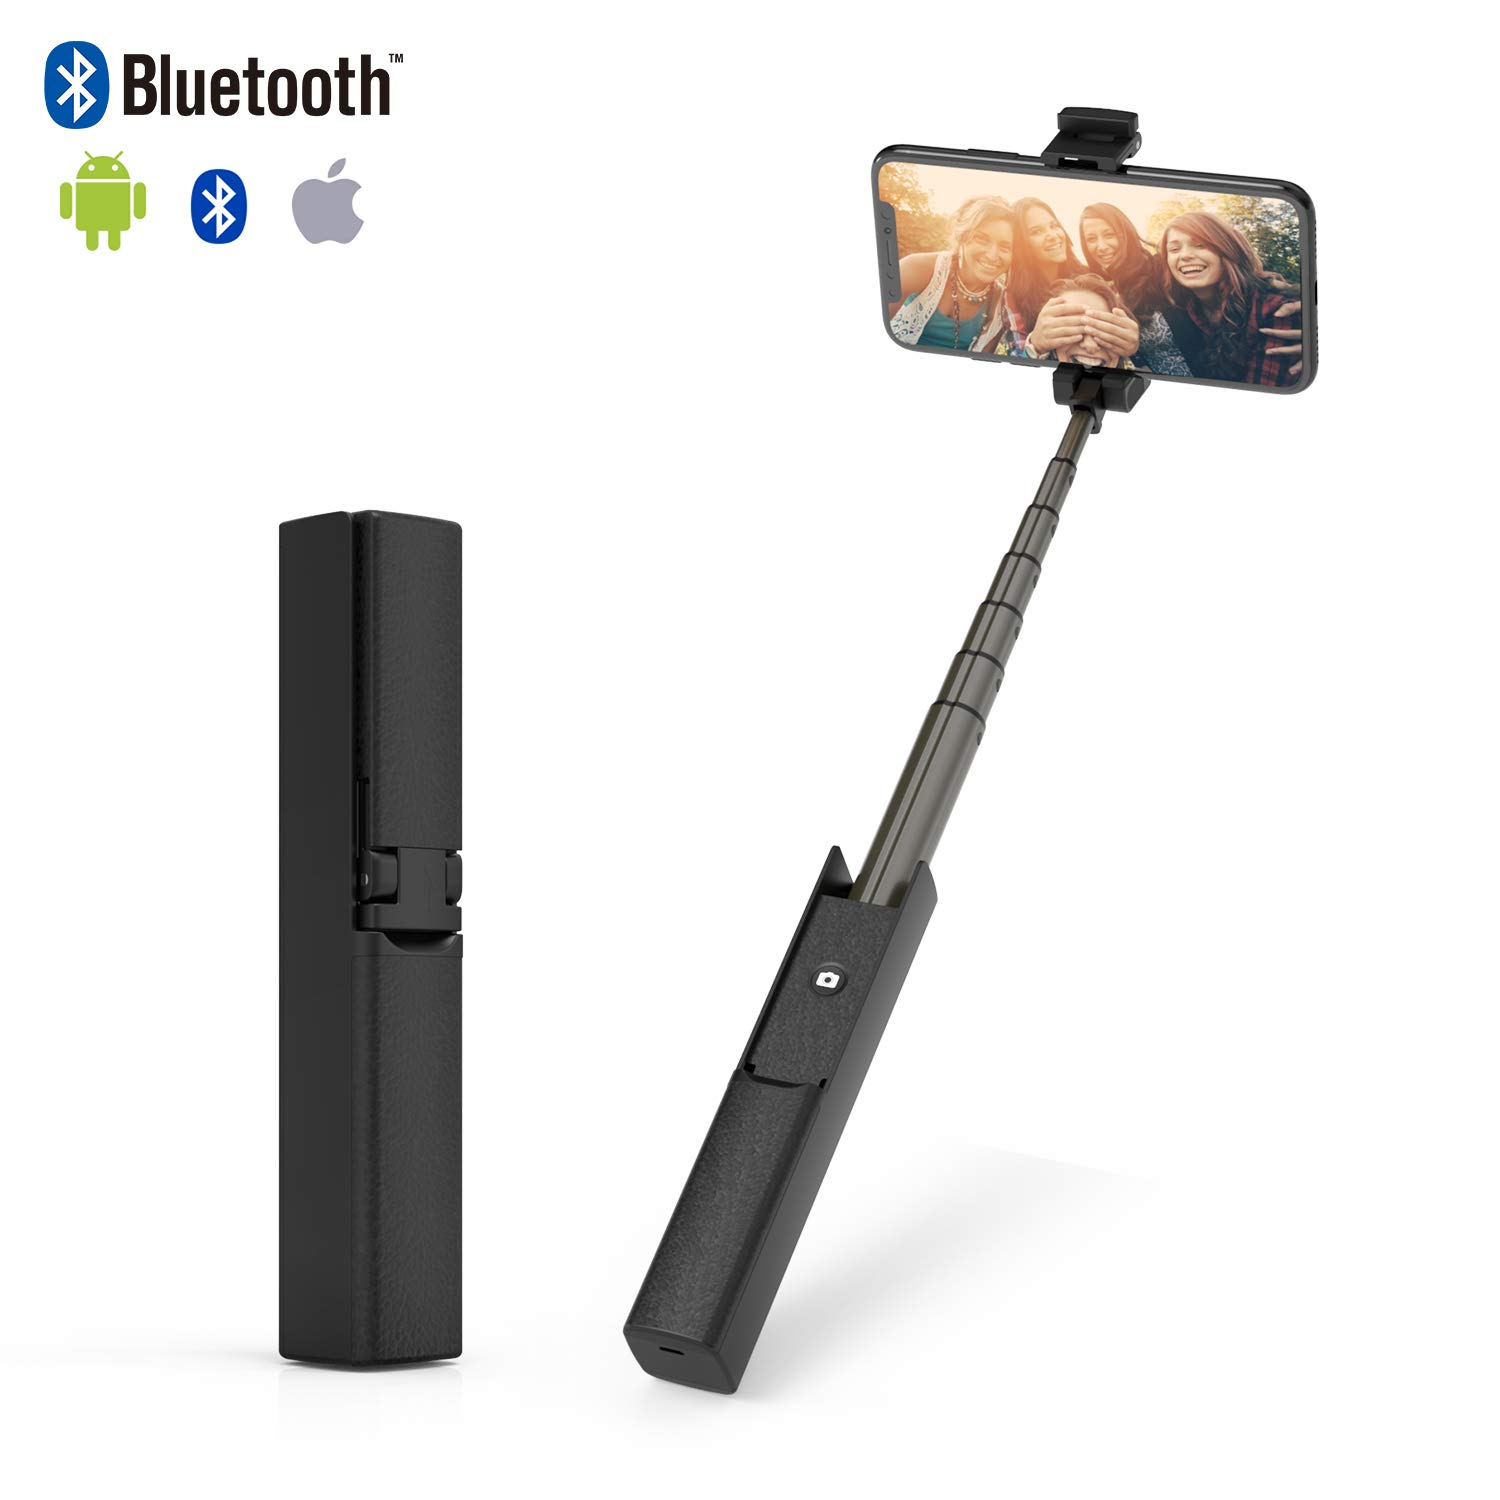 Bluetooth Selfie Stick ETROBOT All in One Design Compact Pocket Size Extendable Portable Wireless Selfie Stick for Smartphone Like iPhone X/8/8P/7/7P/6P Samsung S8/S9 ISO Android Black